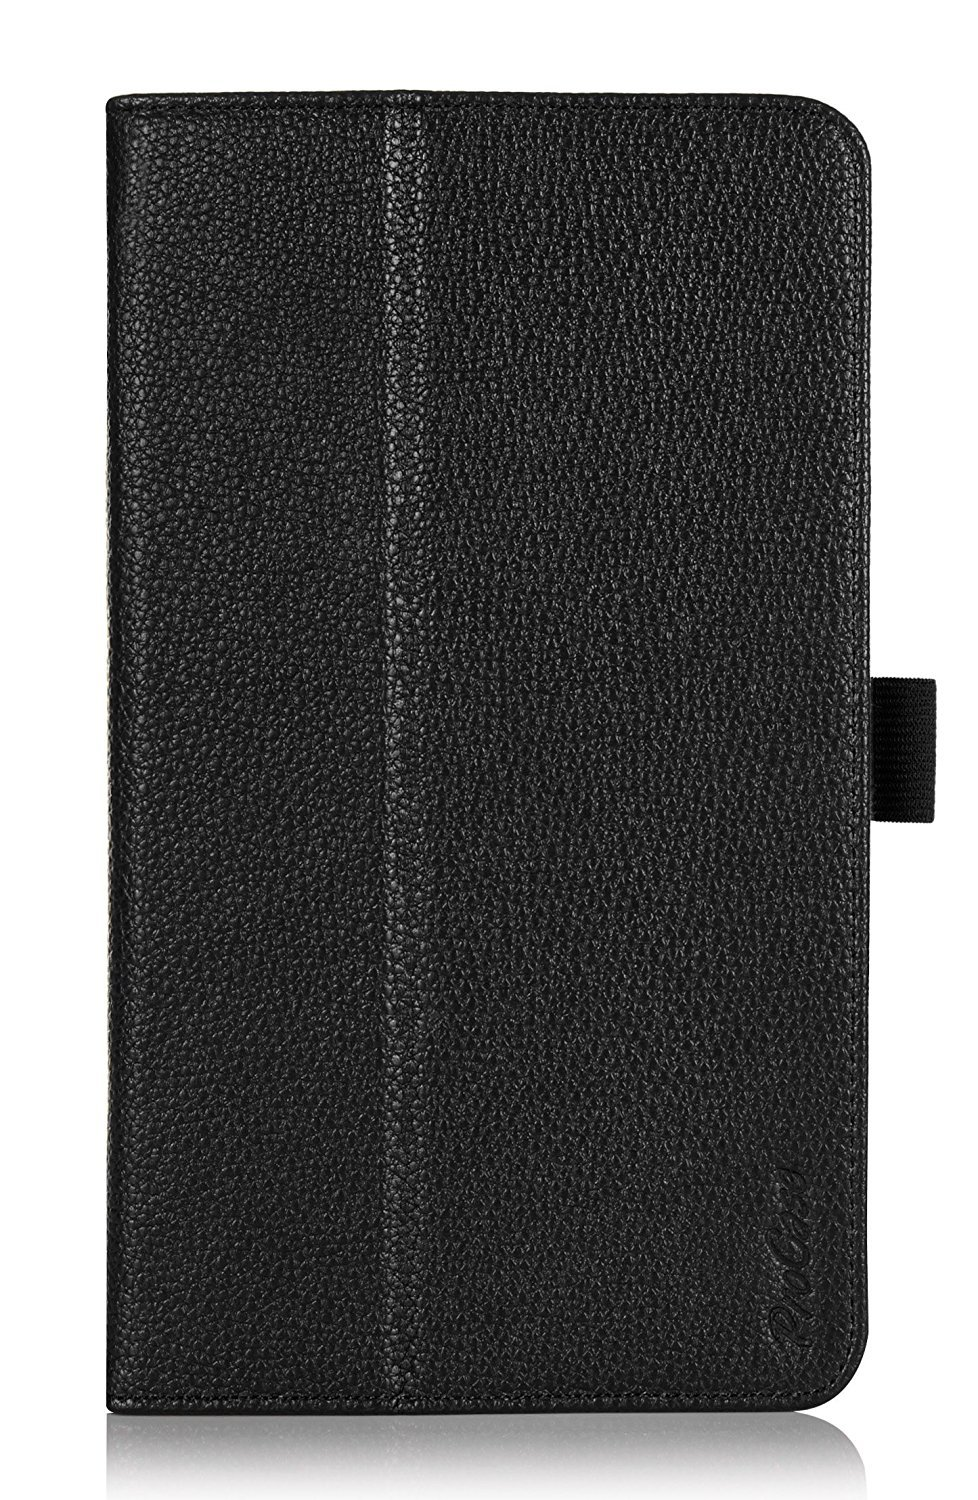 ProCase NVIDIA SHIELD Tablet K1 Case / NVIDIA SHIELD Case - Leather Stand Folio Cover Case for 2015 NVIDIA SHIELD Tablet K1 / 2014 NVIDIA Shield 2 tablet (Black) 2863266